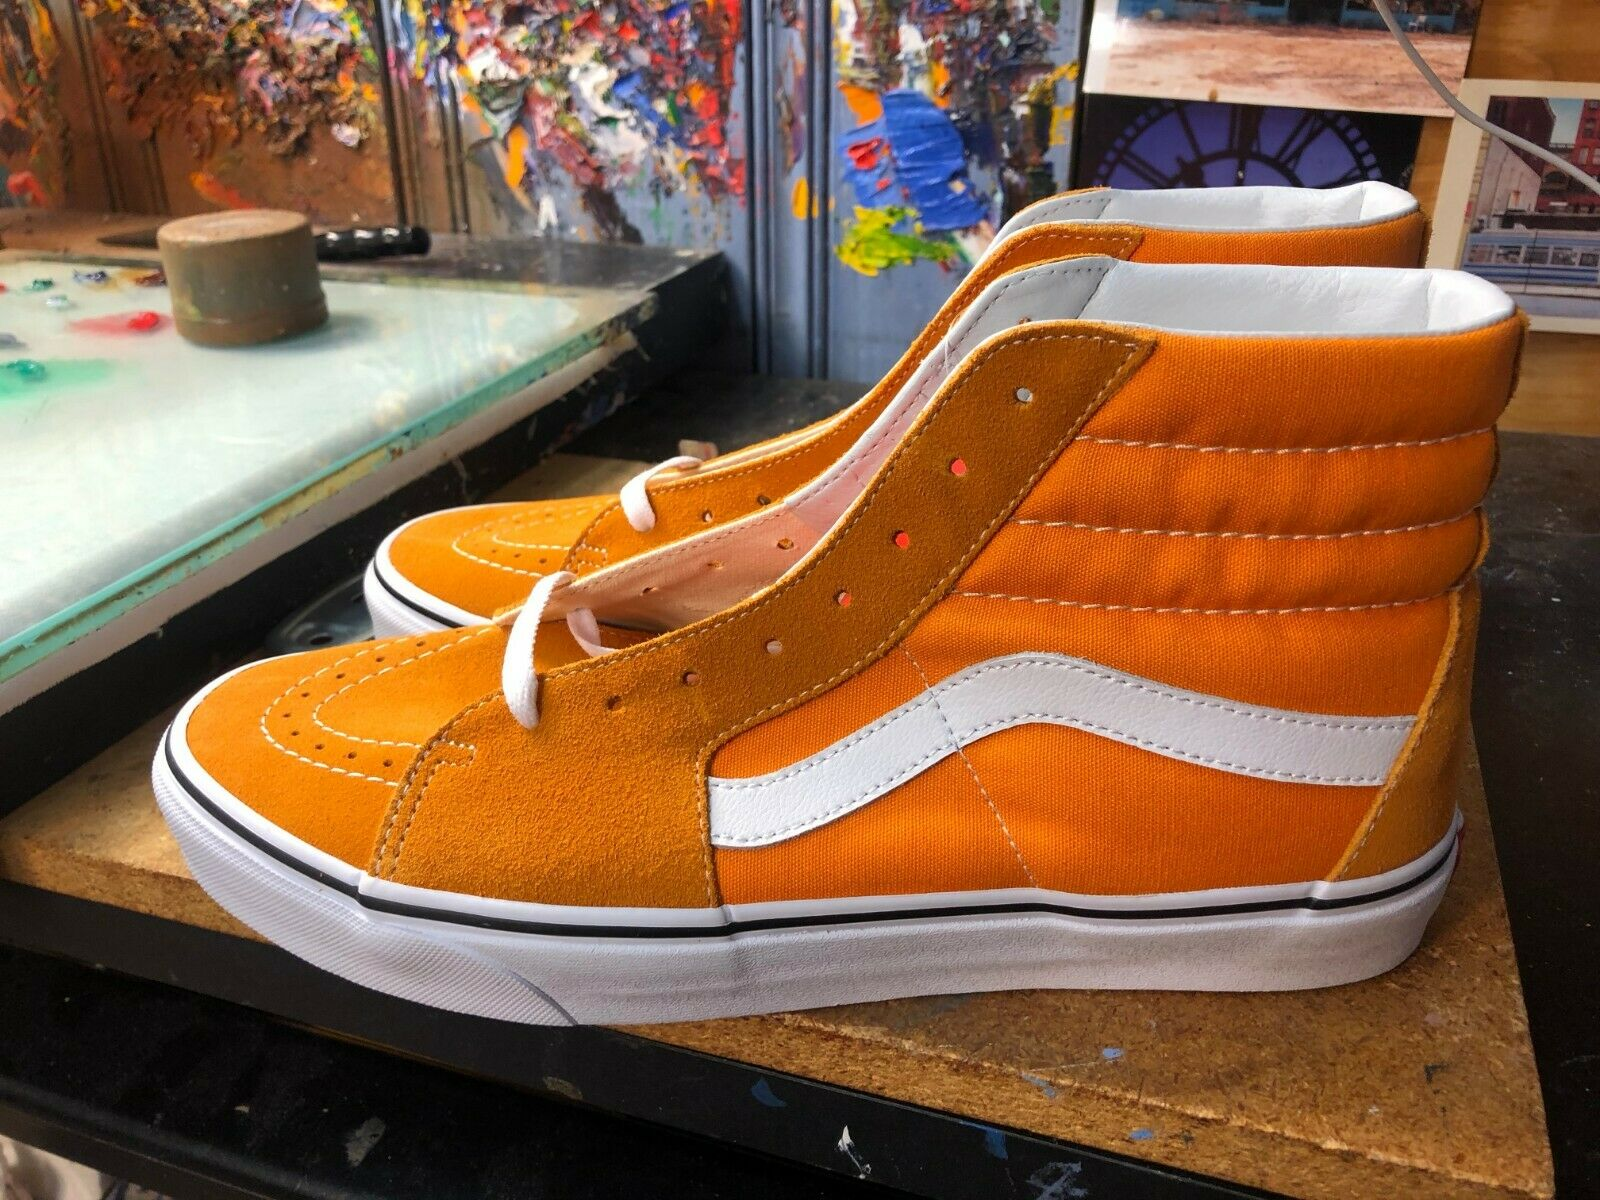 Vans Sk8-Hi Dark Cheddar True White Size US 11.5 Men's VN0A38GEUKU New orange